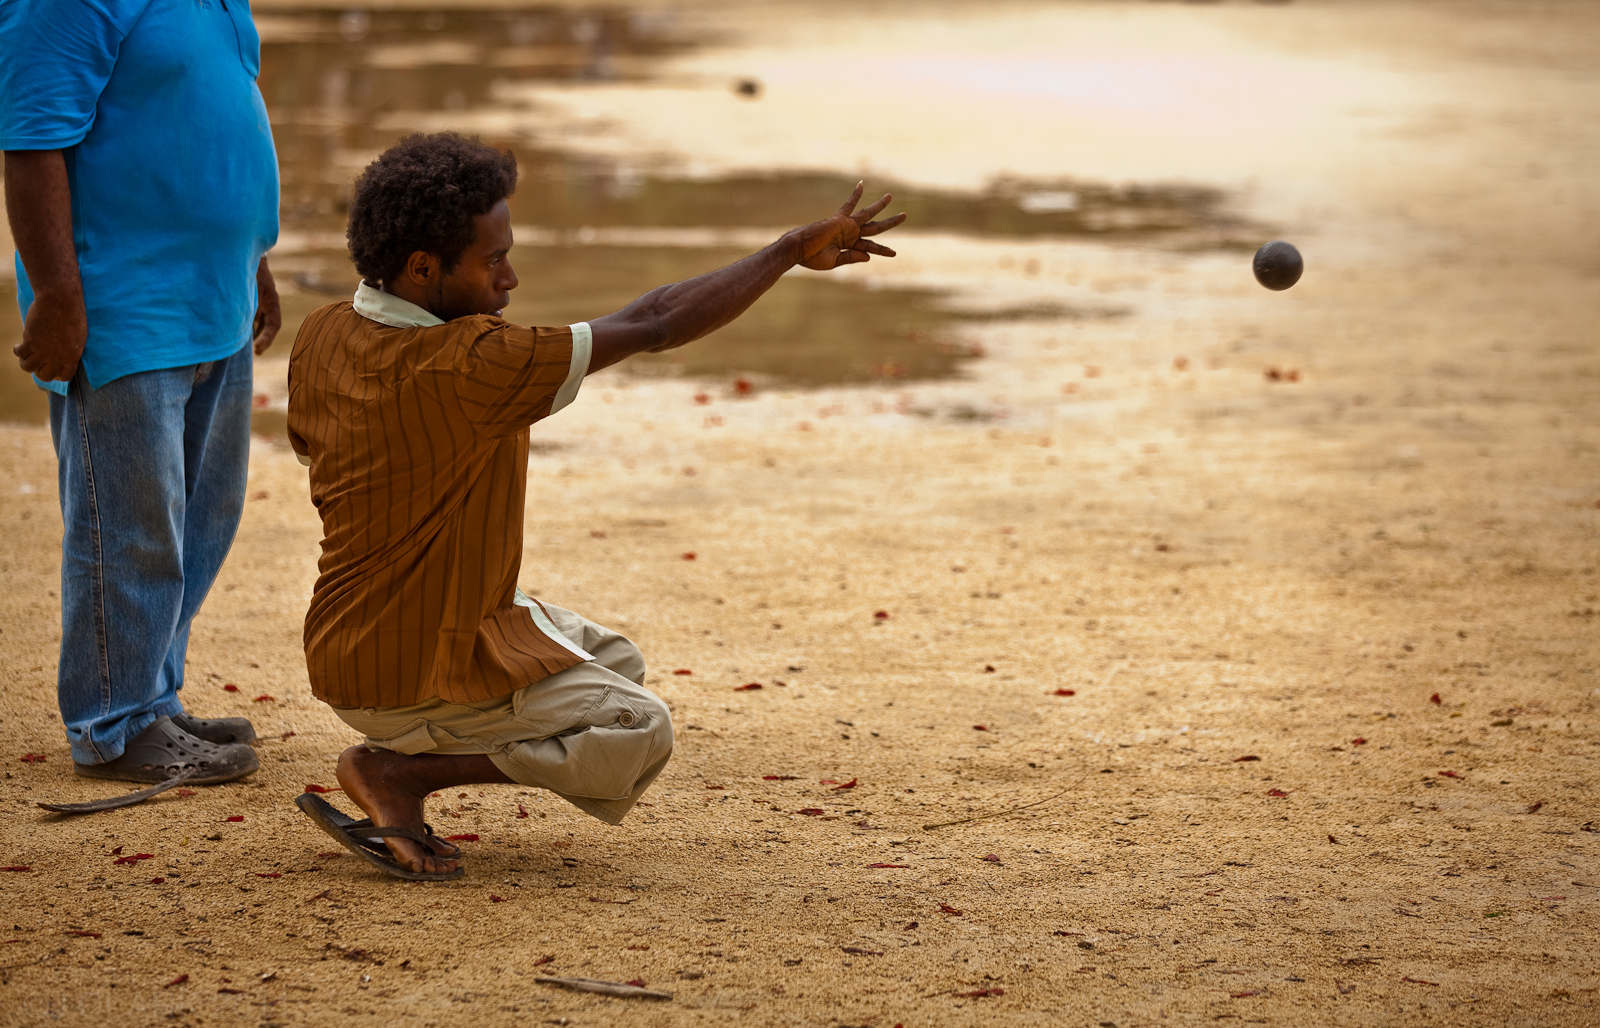 LOCALS PLAY BALL IN PORT VILA